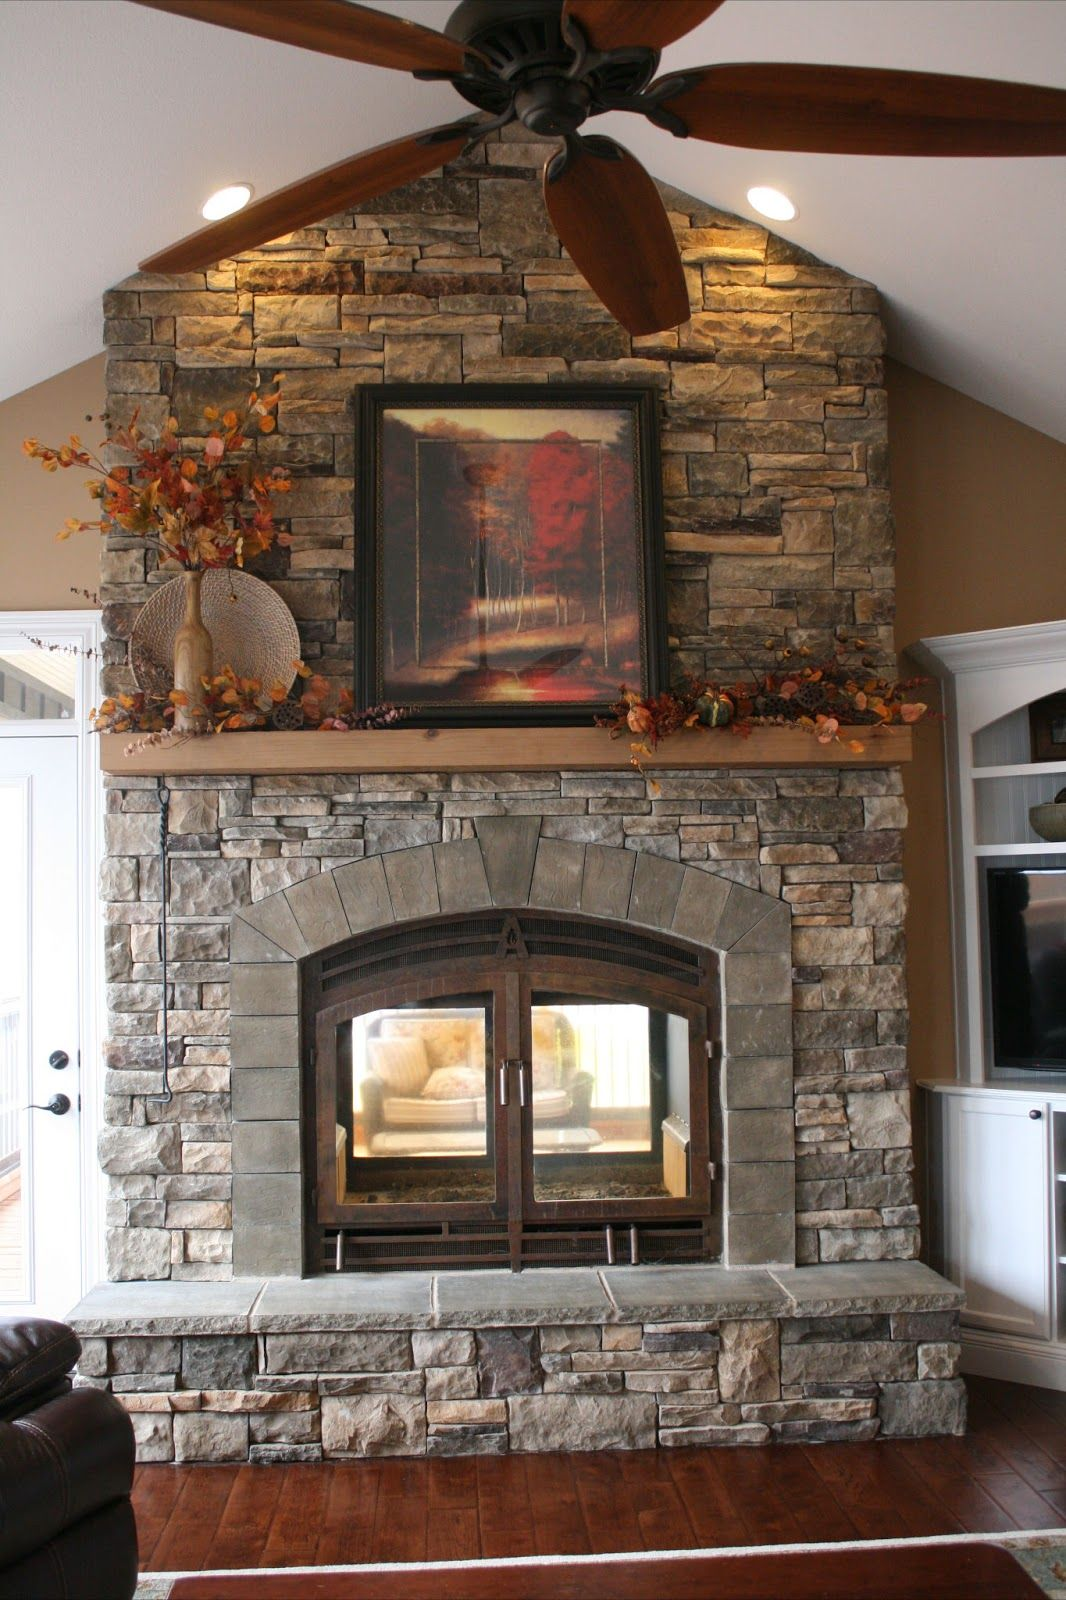 Our seethrough fireplace system is viewable from two sides and made